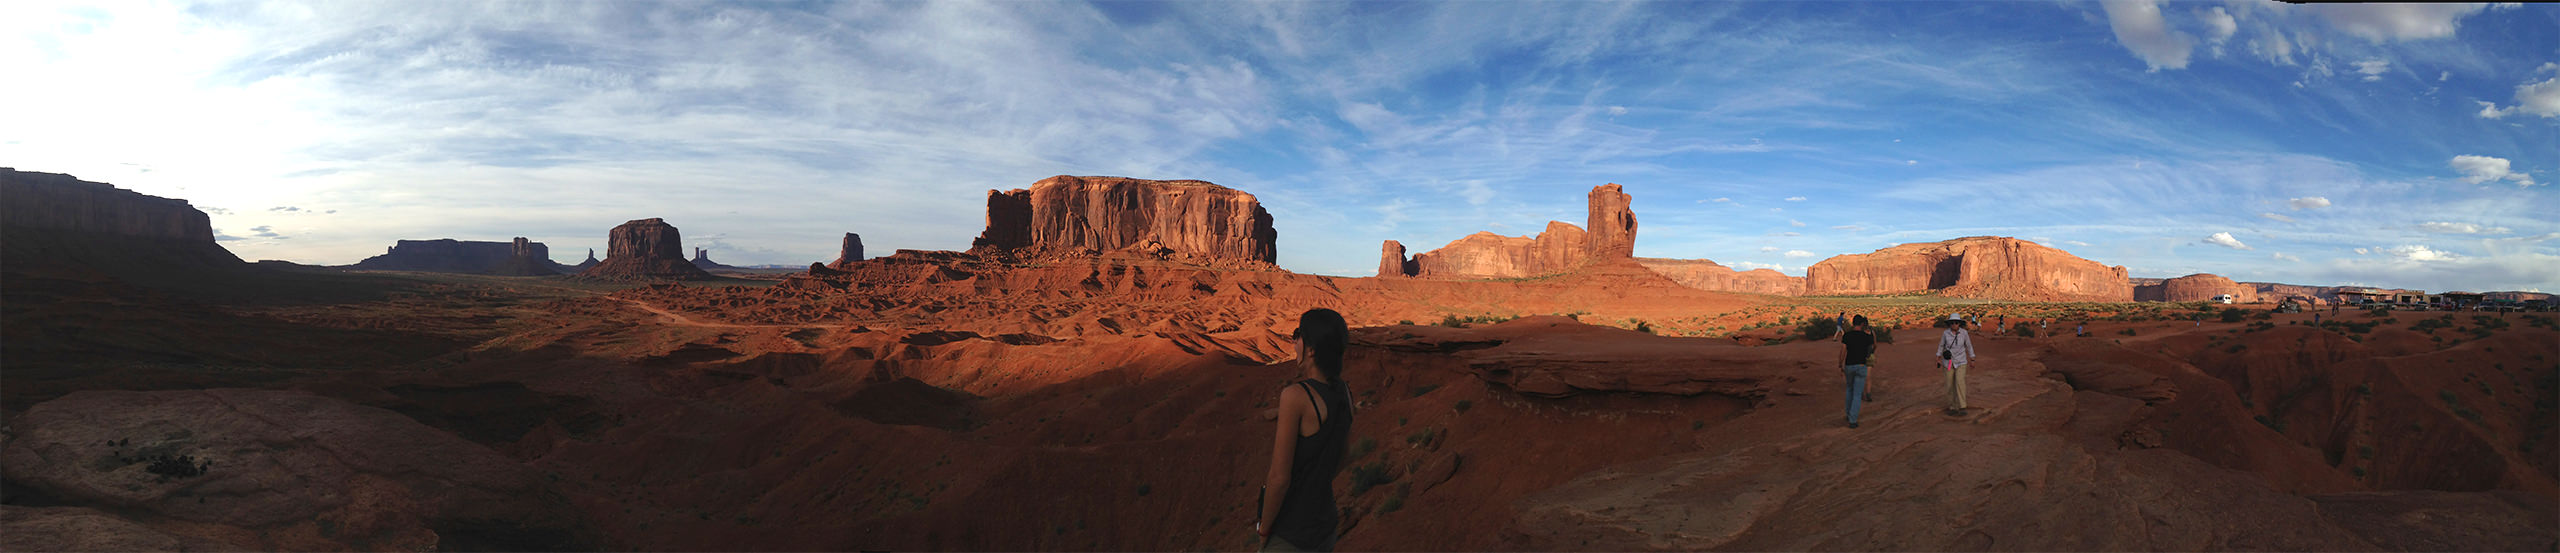 Monument Valley panoramique